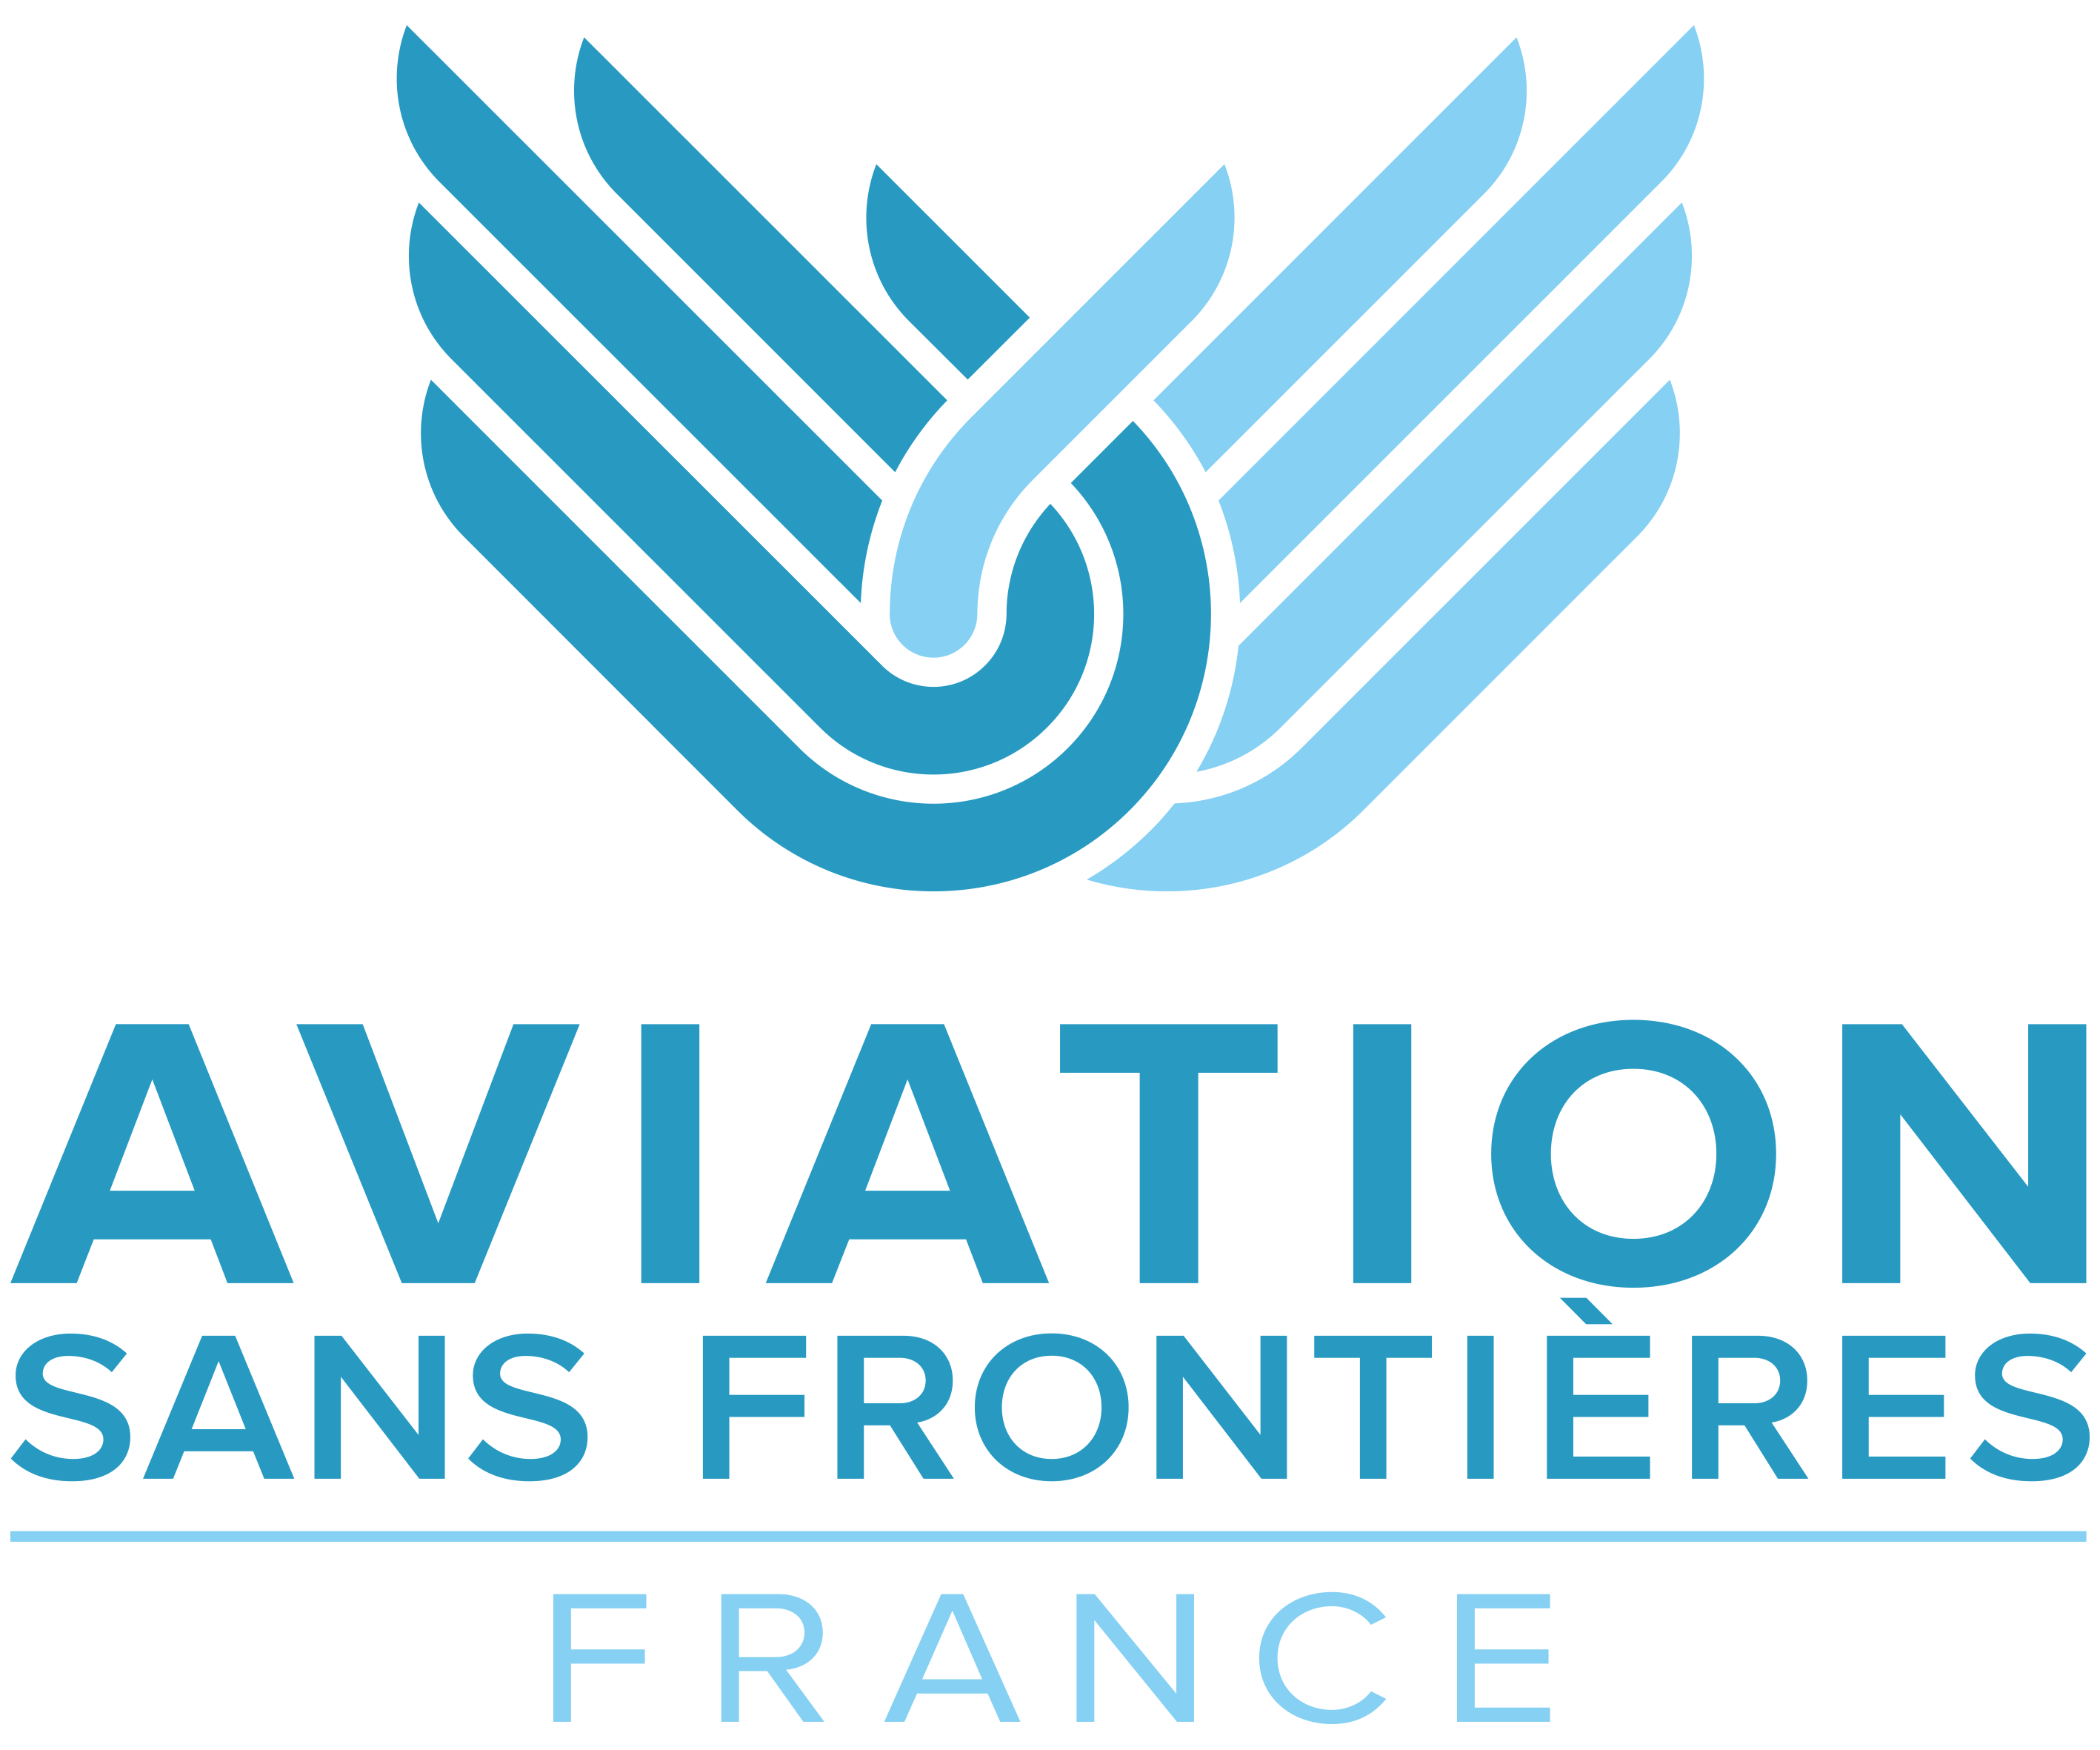 logo aviation sans frontiere